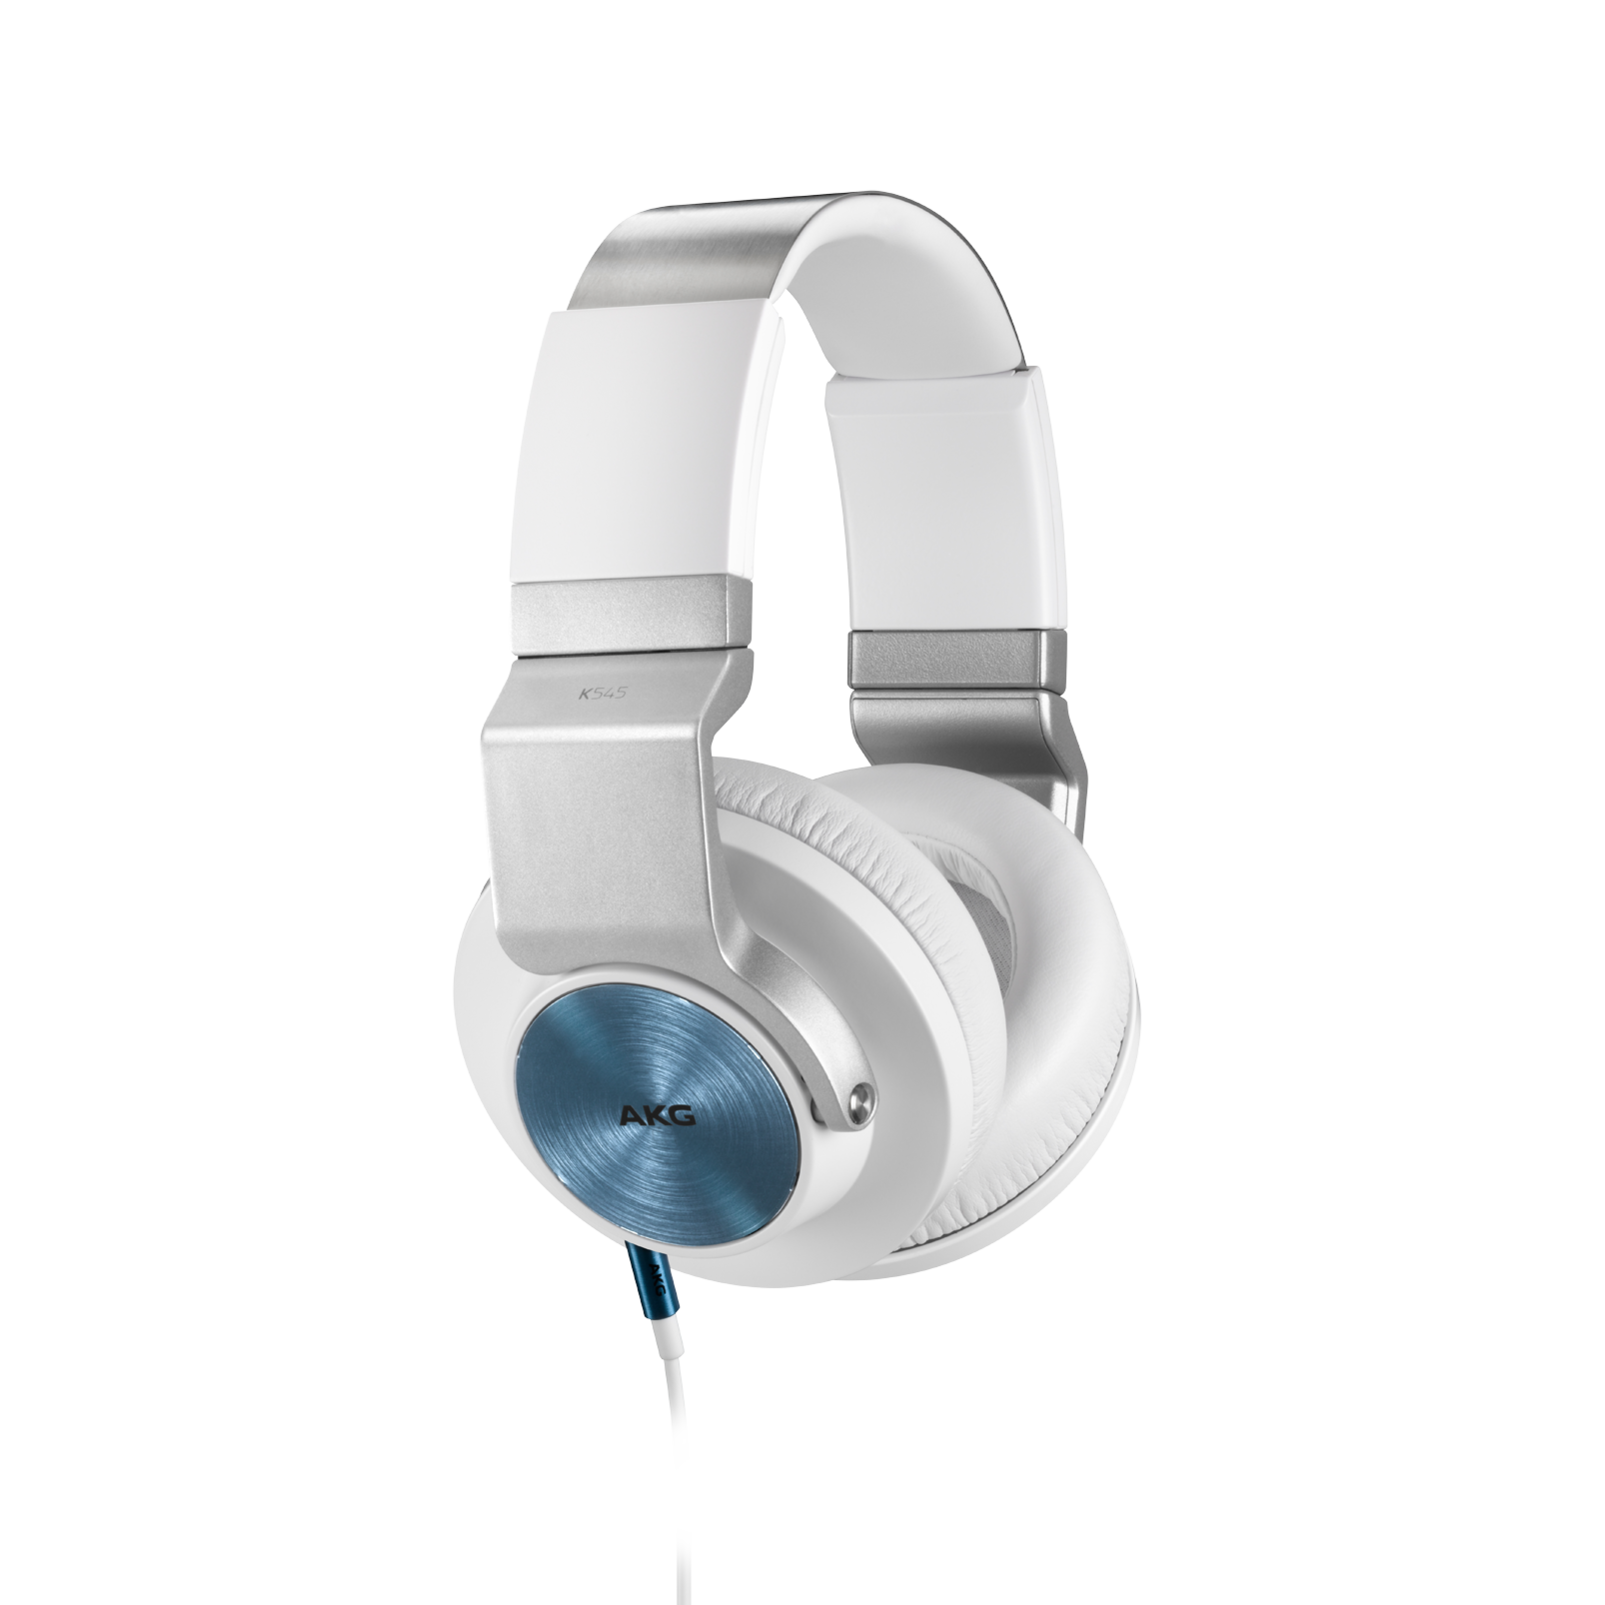 K 545 - White - High performance over-ear headphones with microphone and remote - Hero